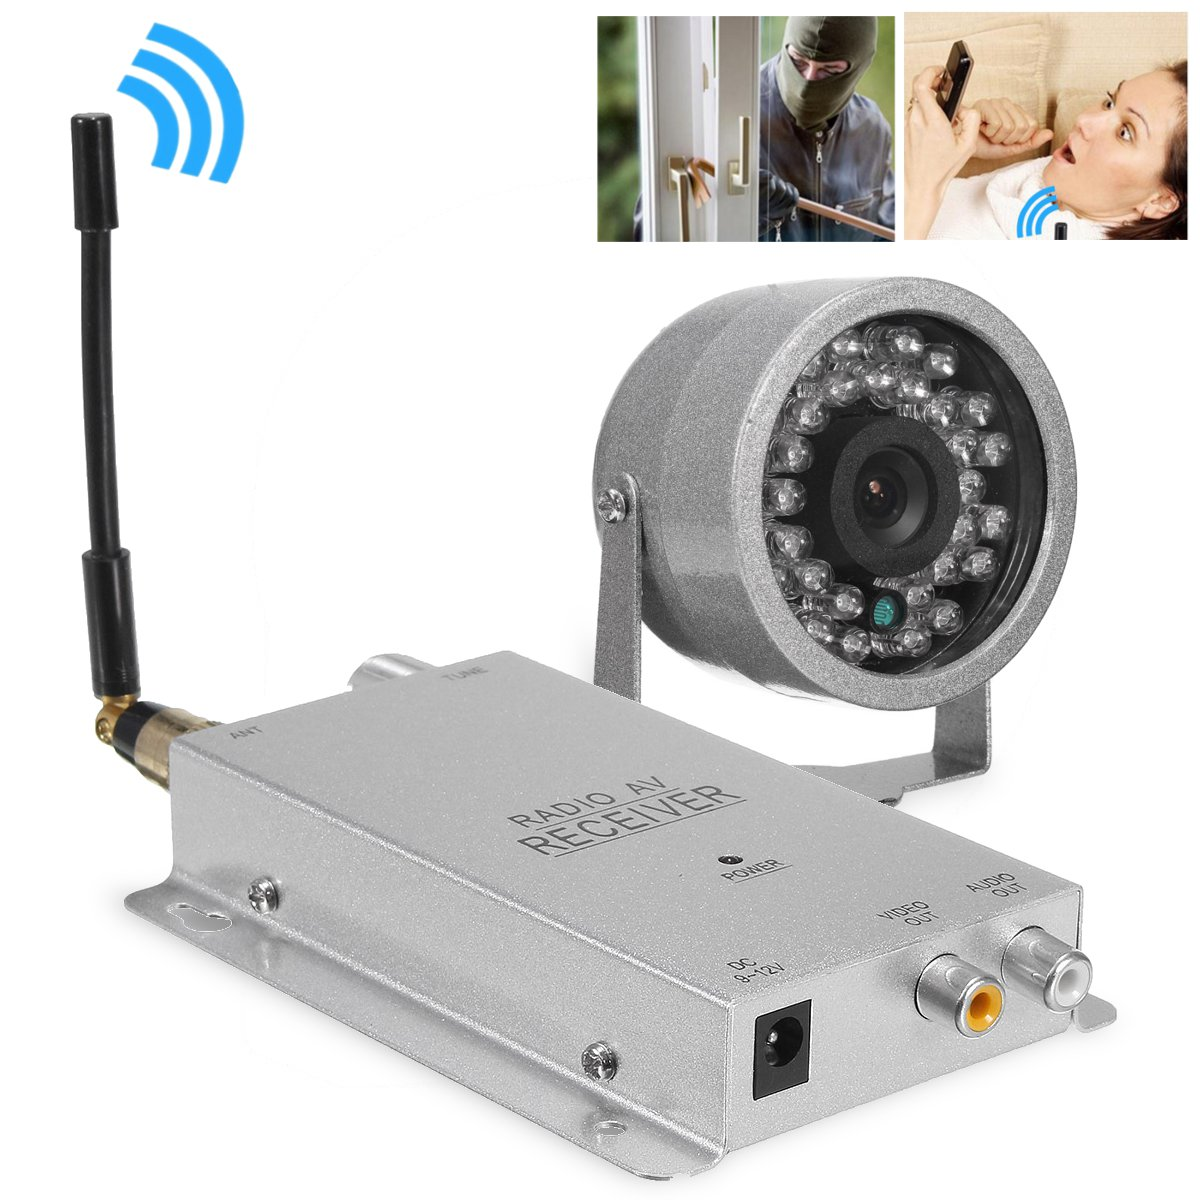 1.2G Wireless Camera Kit Radio AV Receiver With Power Supply Surveillance Home Security With 30 LED